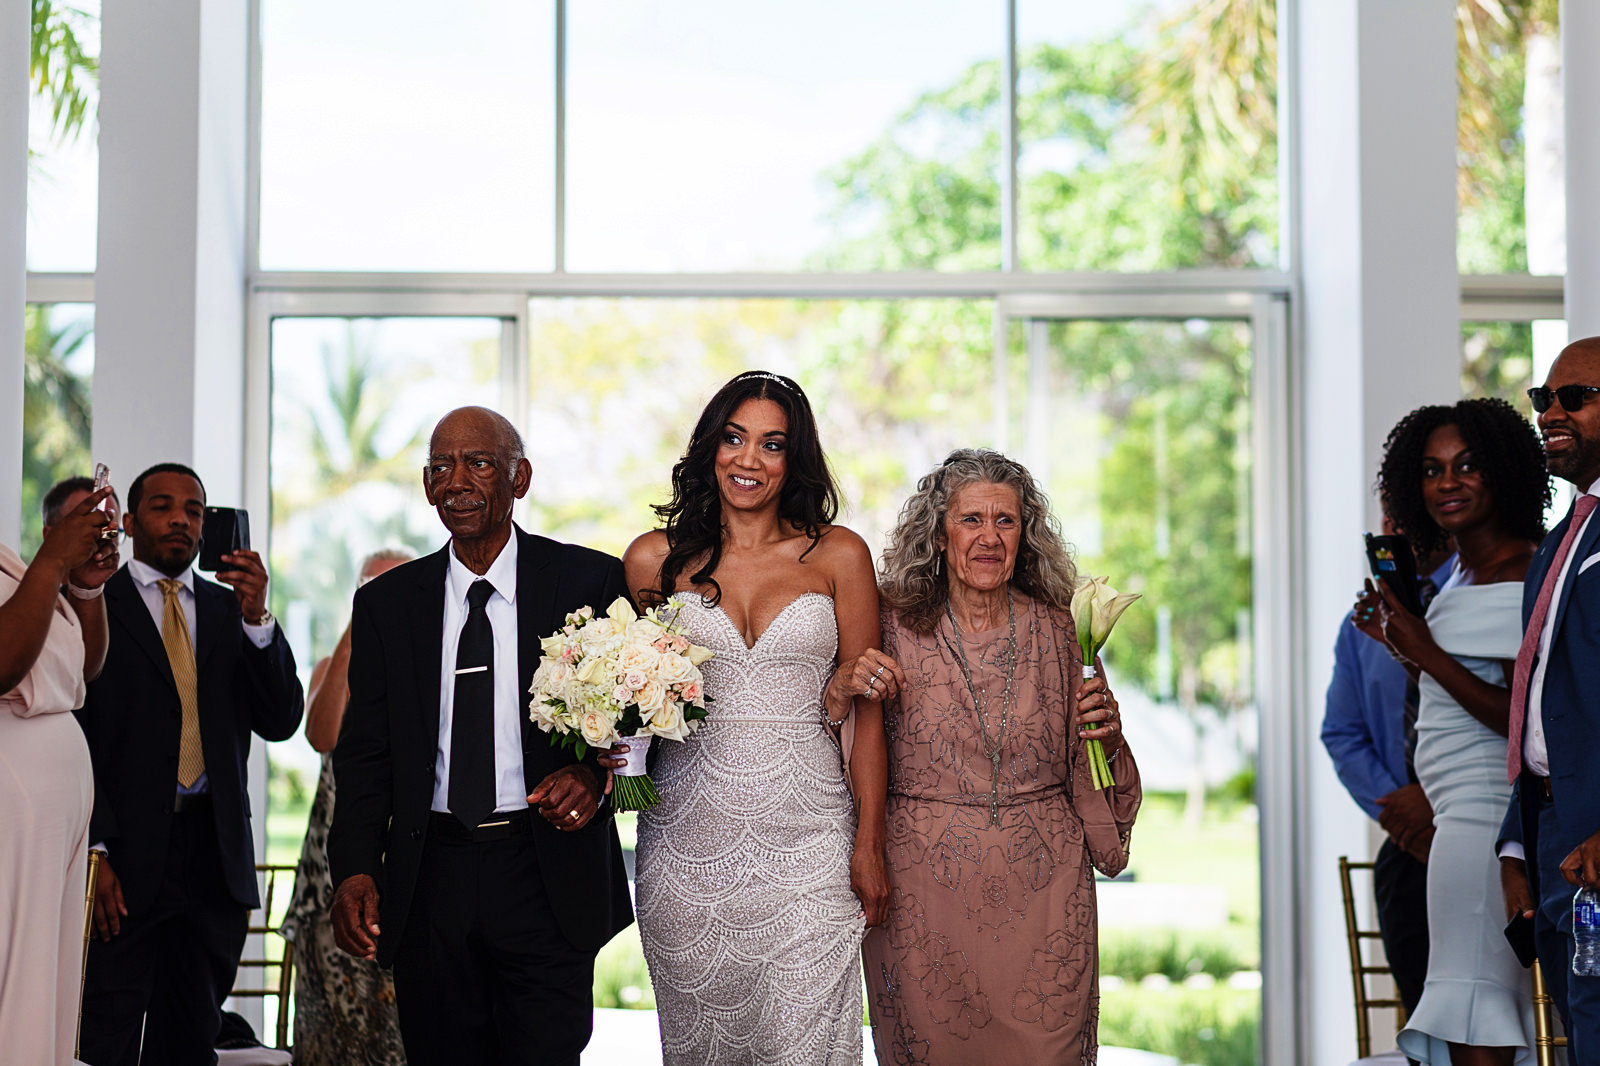 bride-walking-down-aisle-with-parents